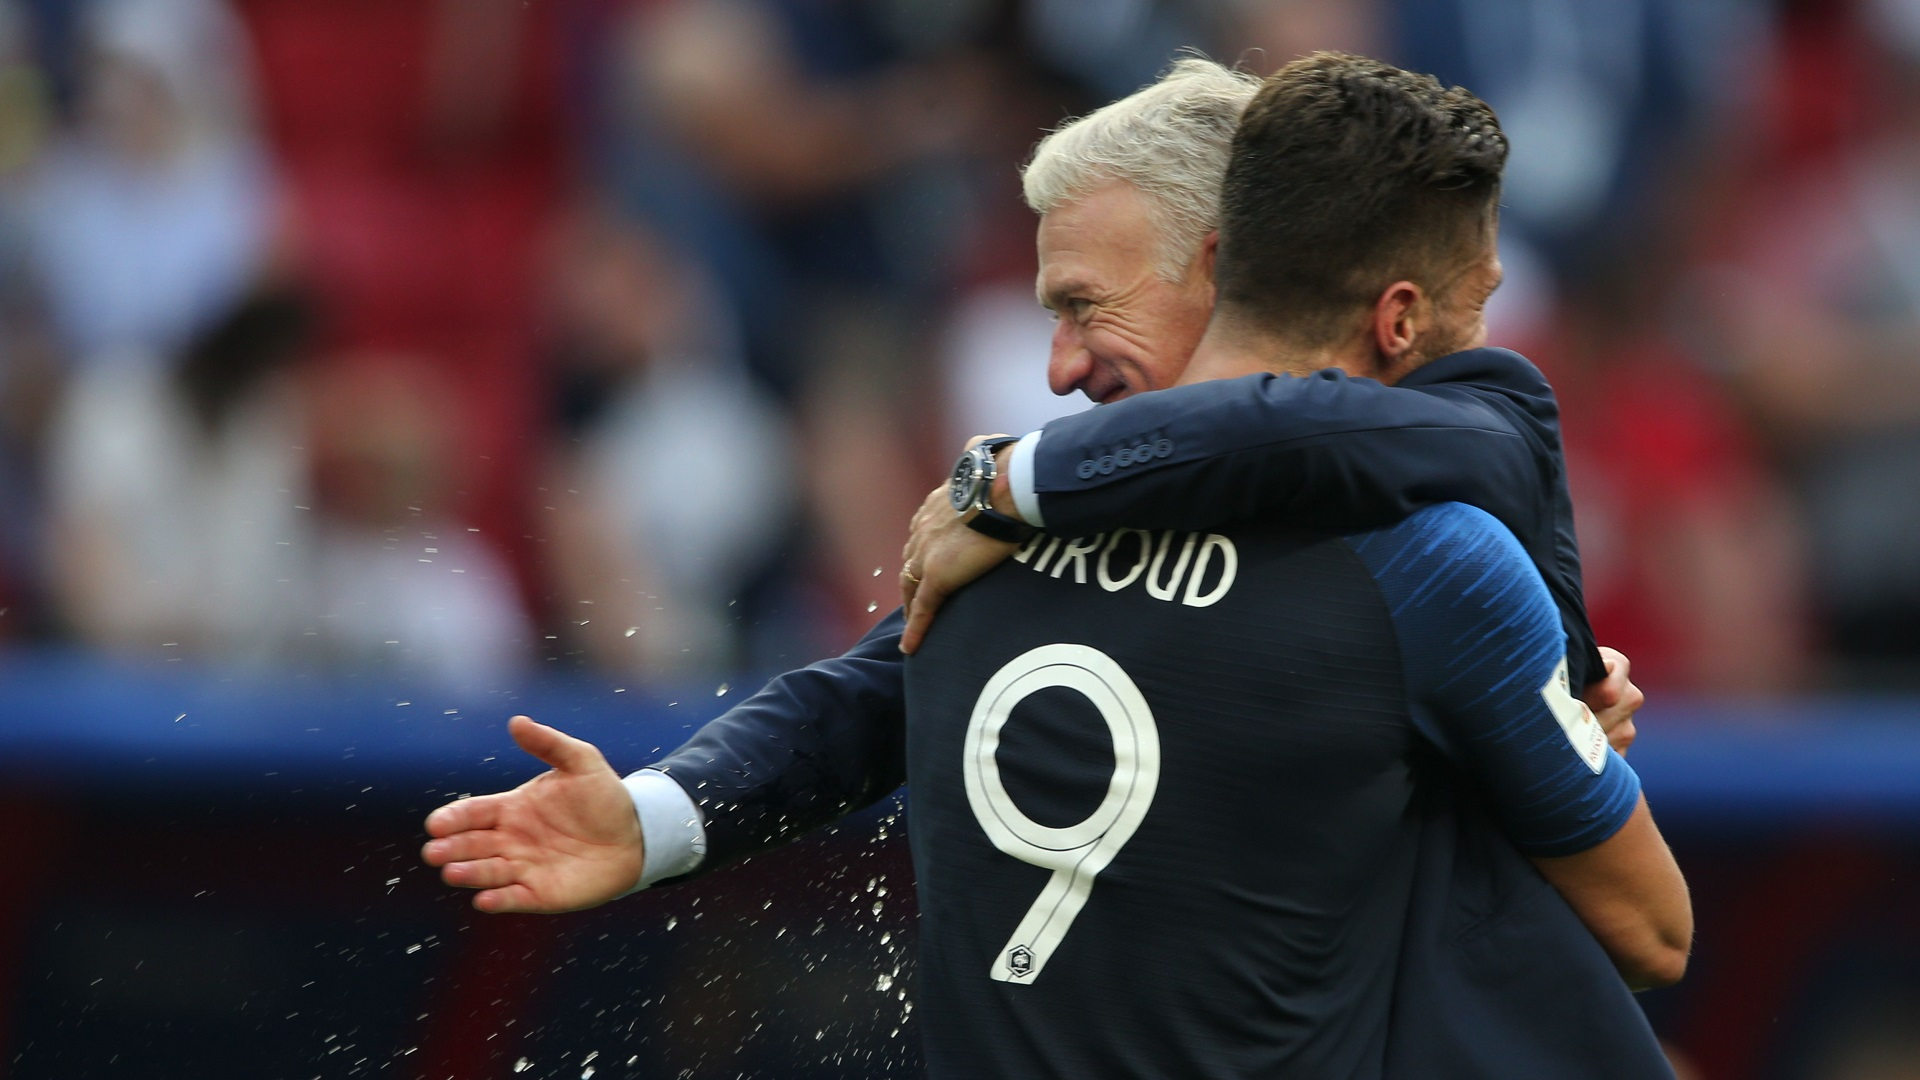 'He is not happy' - Giroud urged to leave Chelsea by France boss Deschamps as Euro 2020 looms